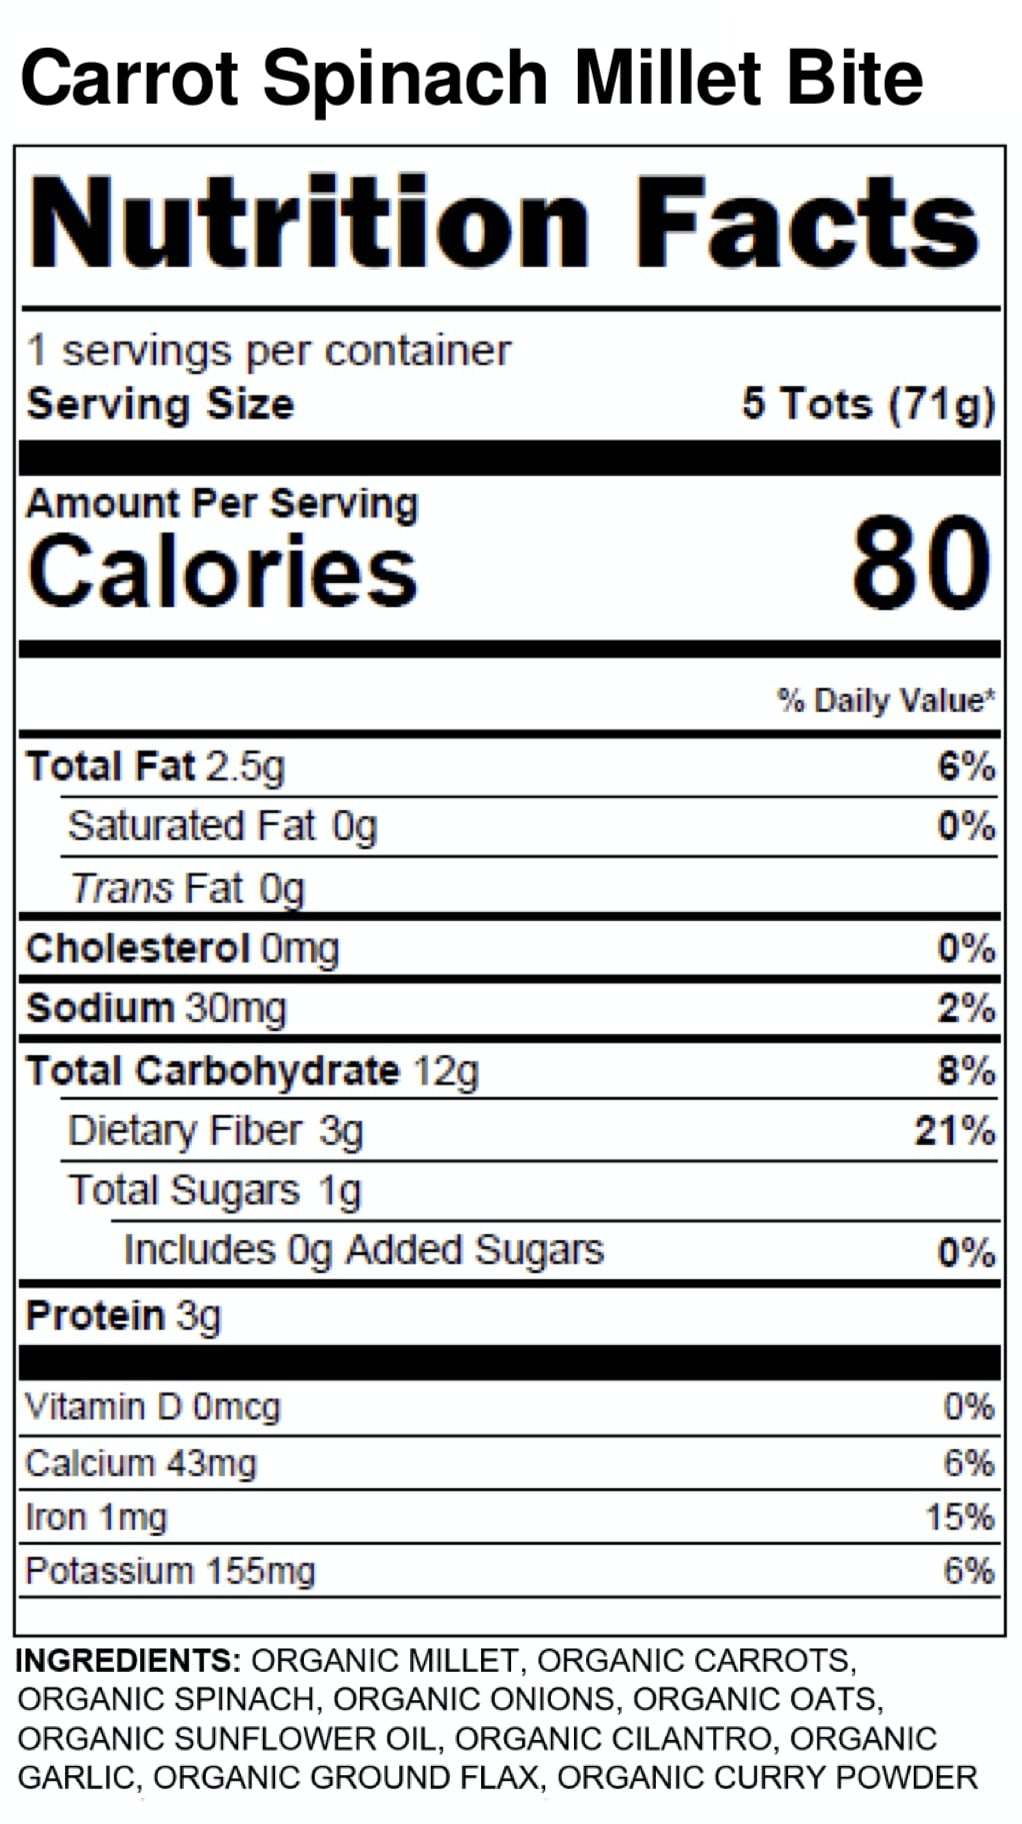 Yumi Carrot Spinach Millet Bite nutrition facts